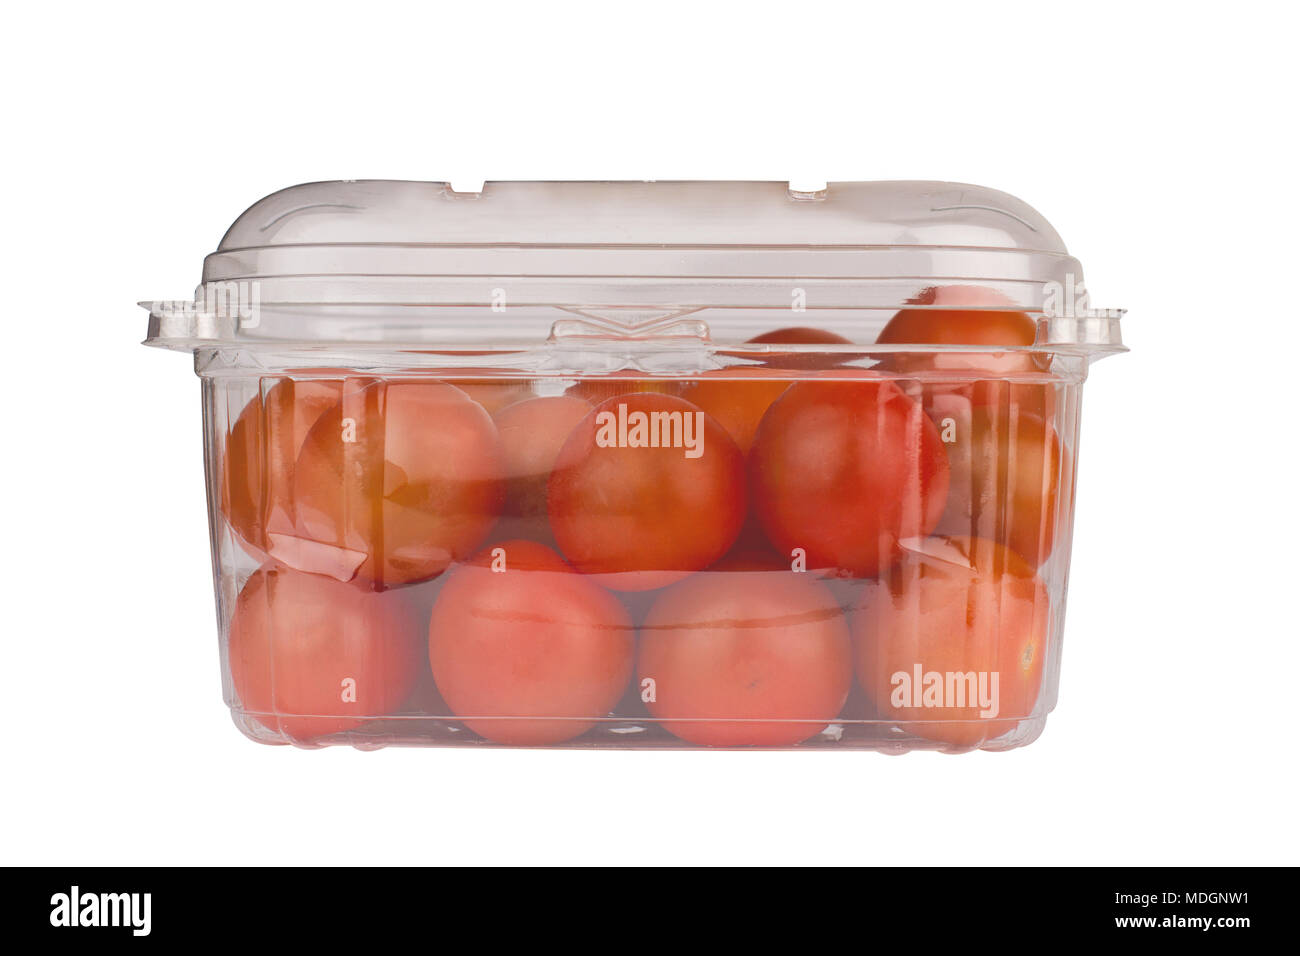 front view closeup detail of red cherry tomatoes in closed plastic transparent packaging container isolated on white background - Stock Image